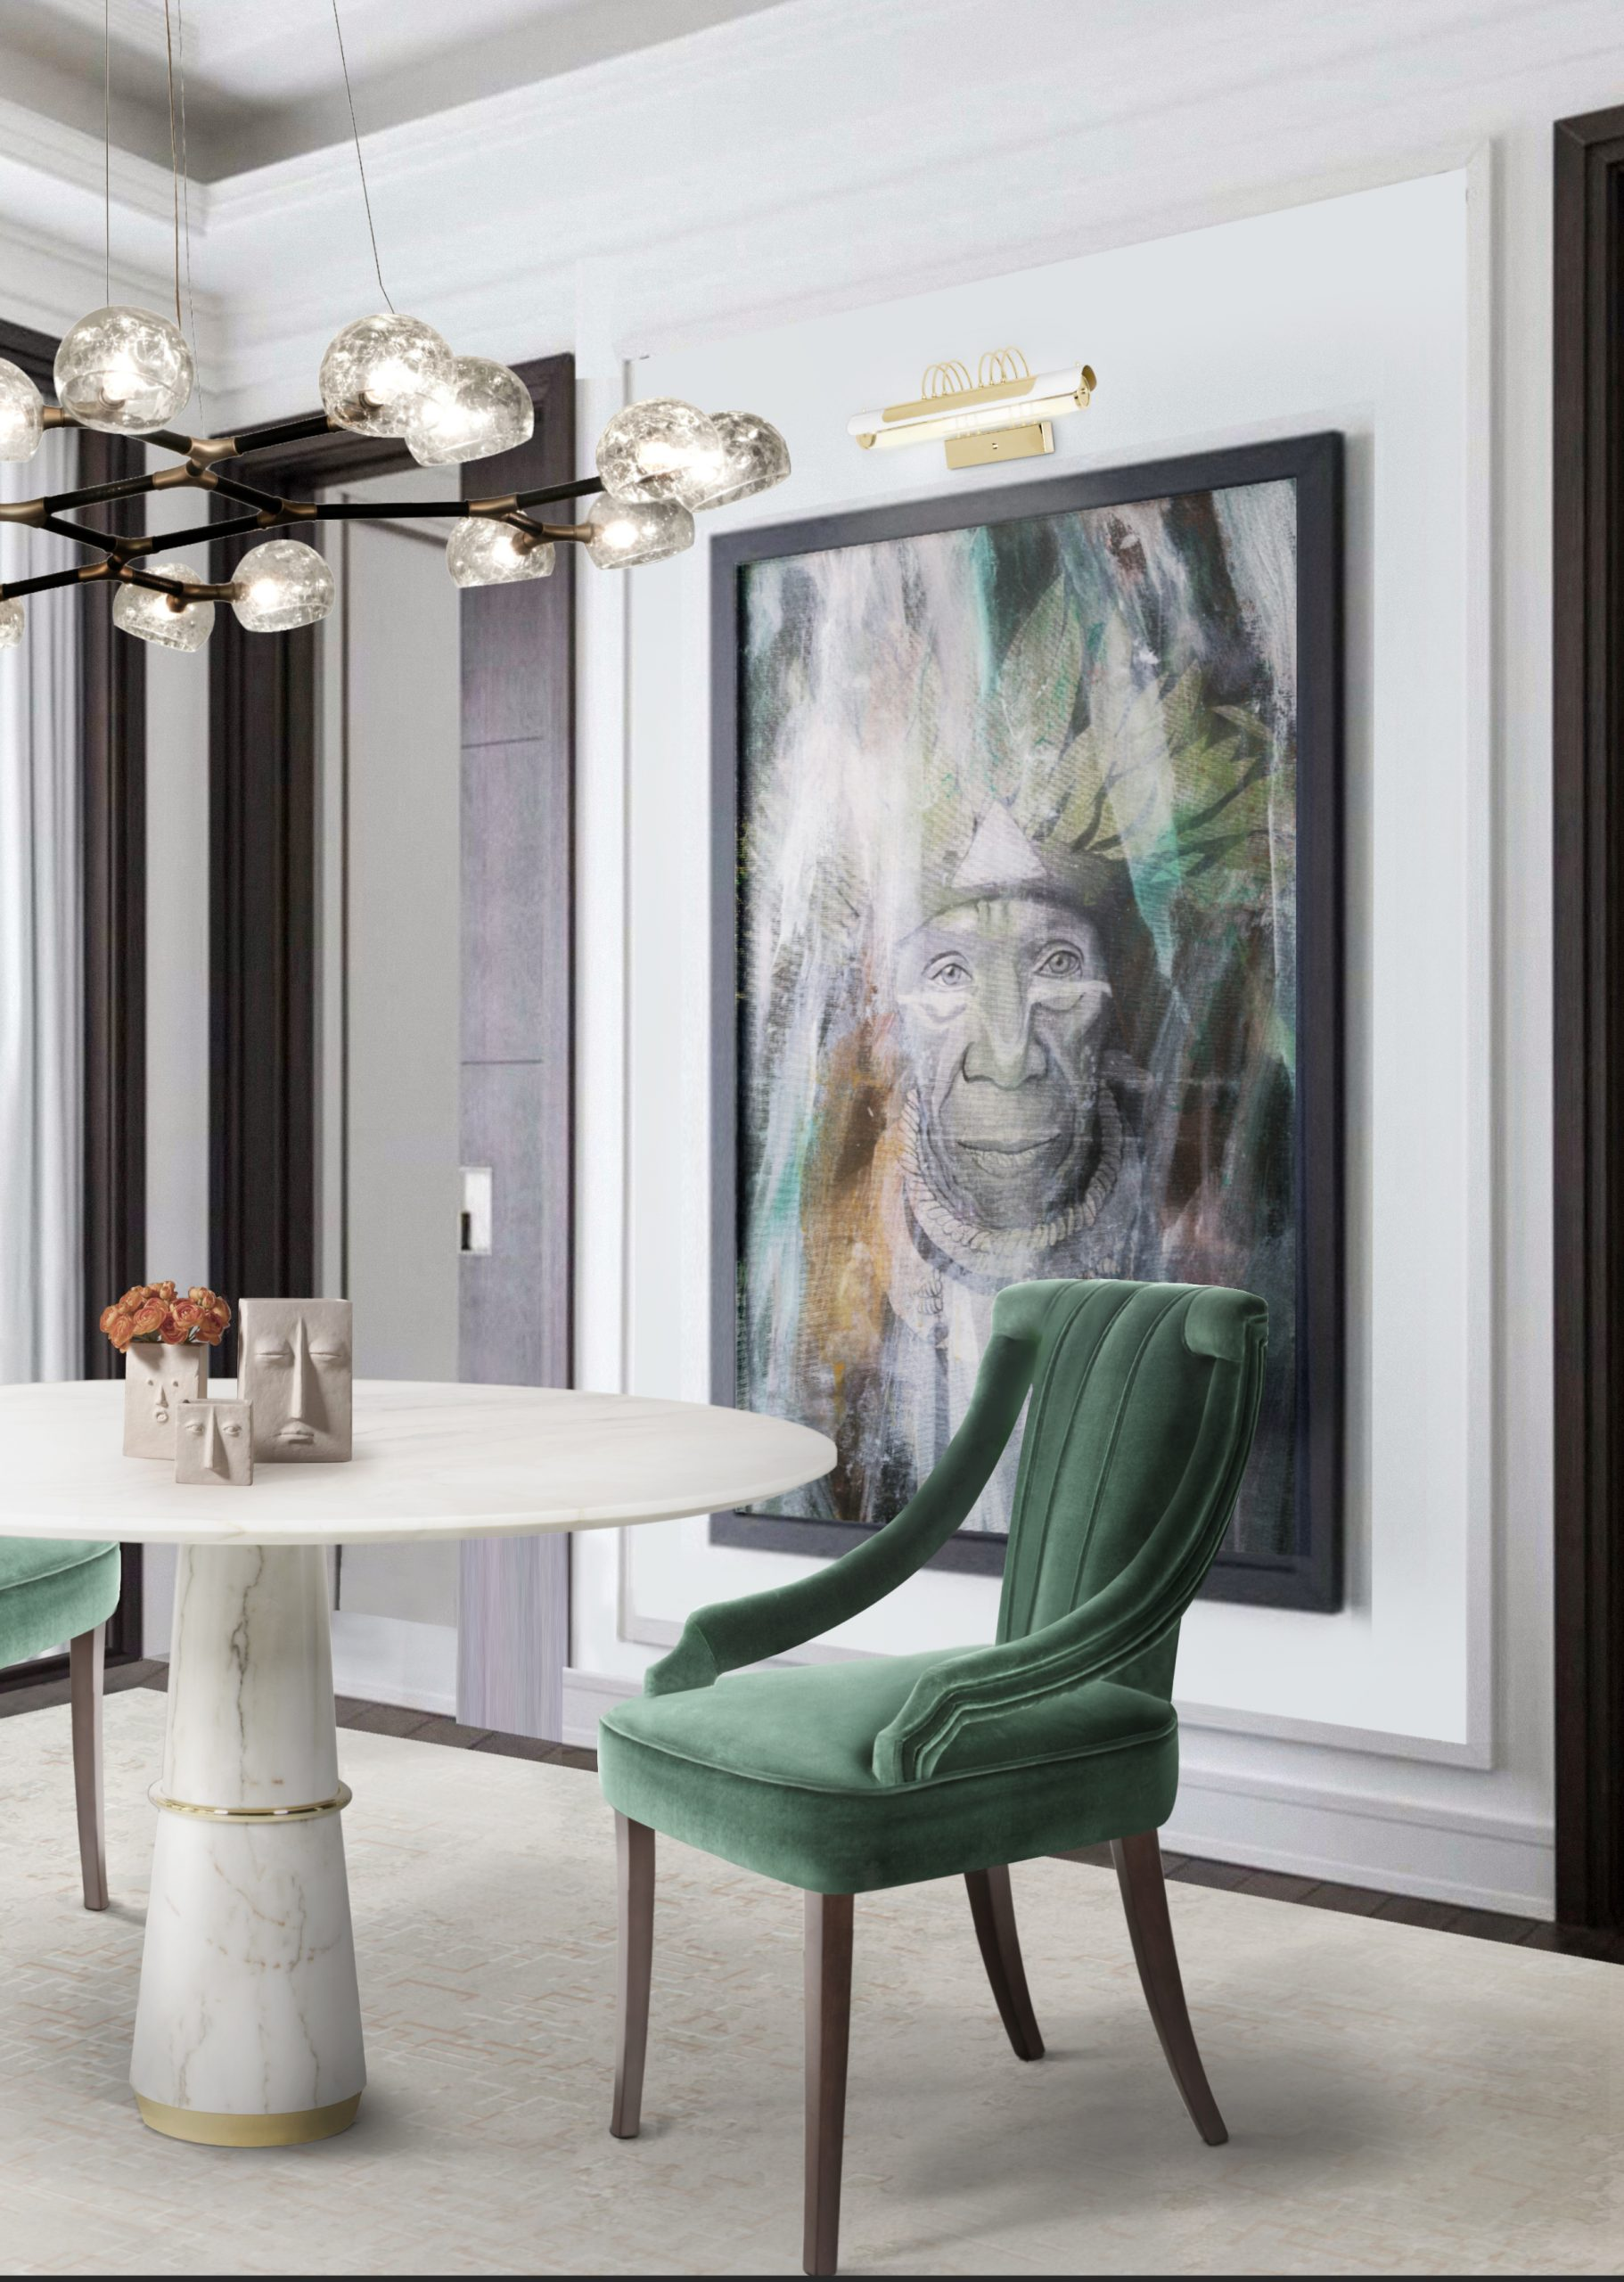 20 Dining Chairs You Will Need For A Modern Dining Room dining chairs 20 Dining Chairs You Will Need For A Modern Dining Room BB cayo dining chair scaled